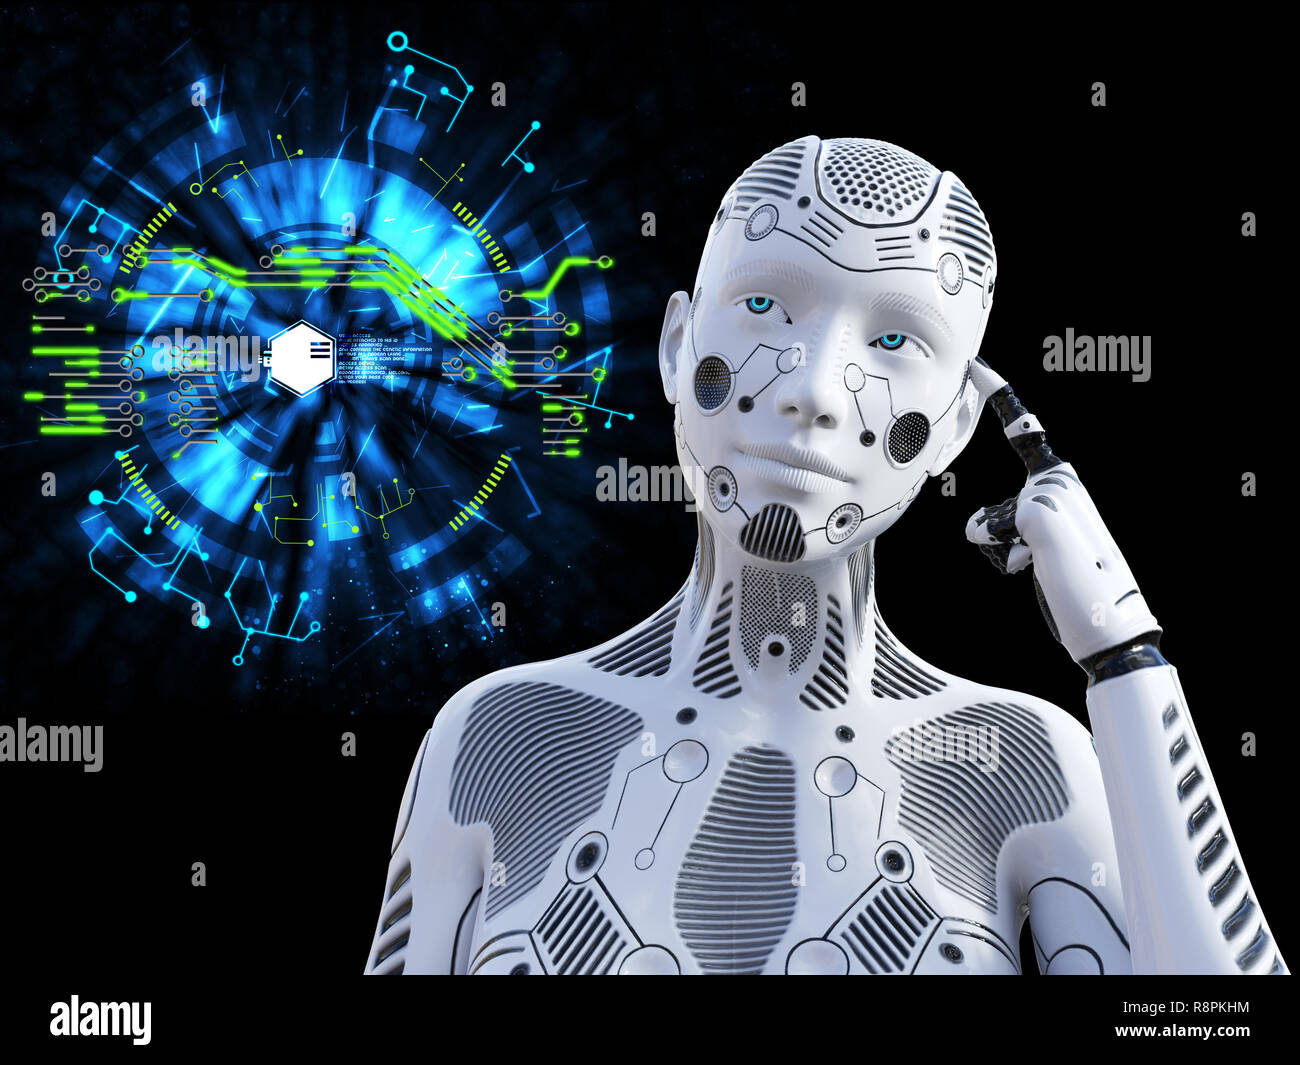 3D rendering of a female robot looking like she is thinking about something using her artificial intelligence. Technology concept. Stock Photo